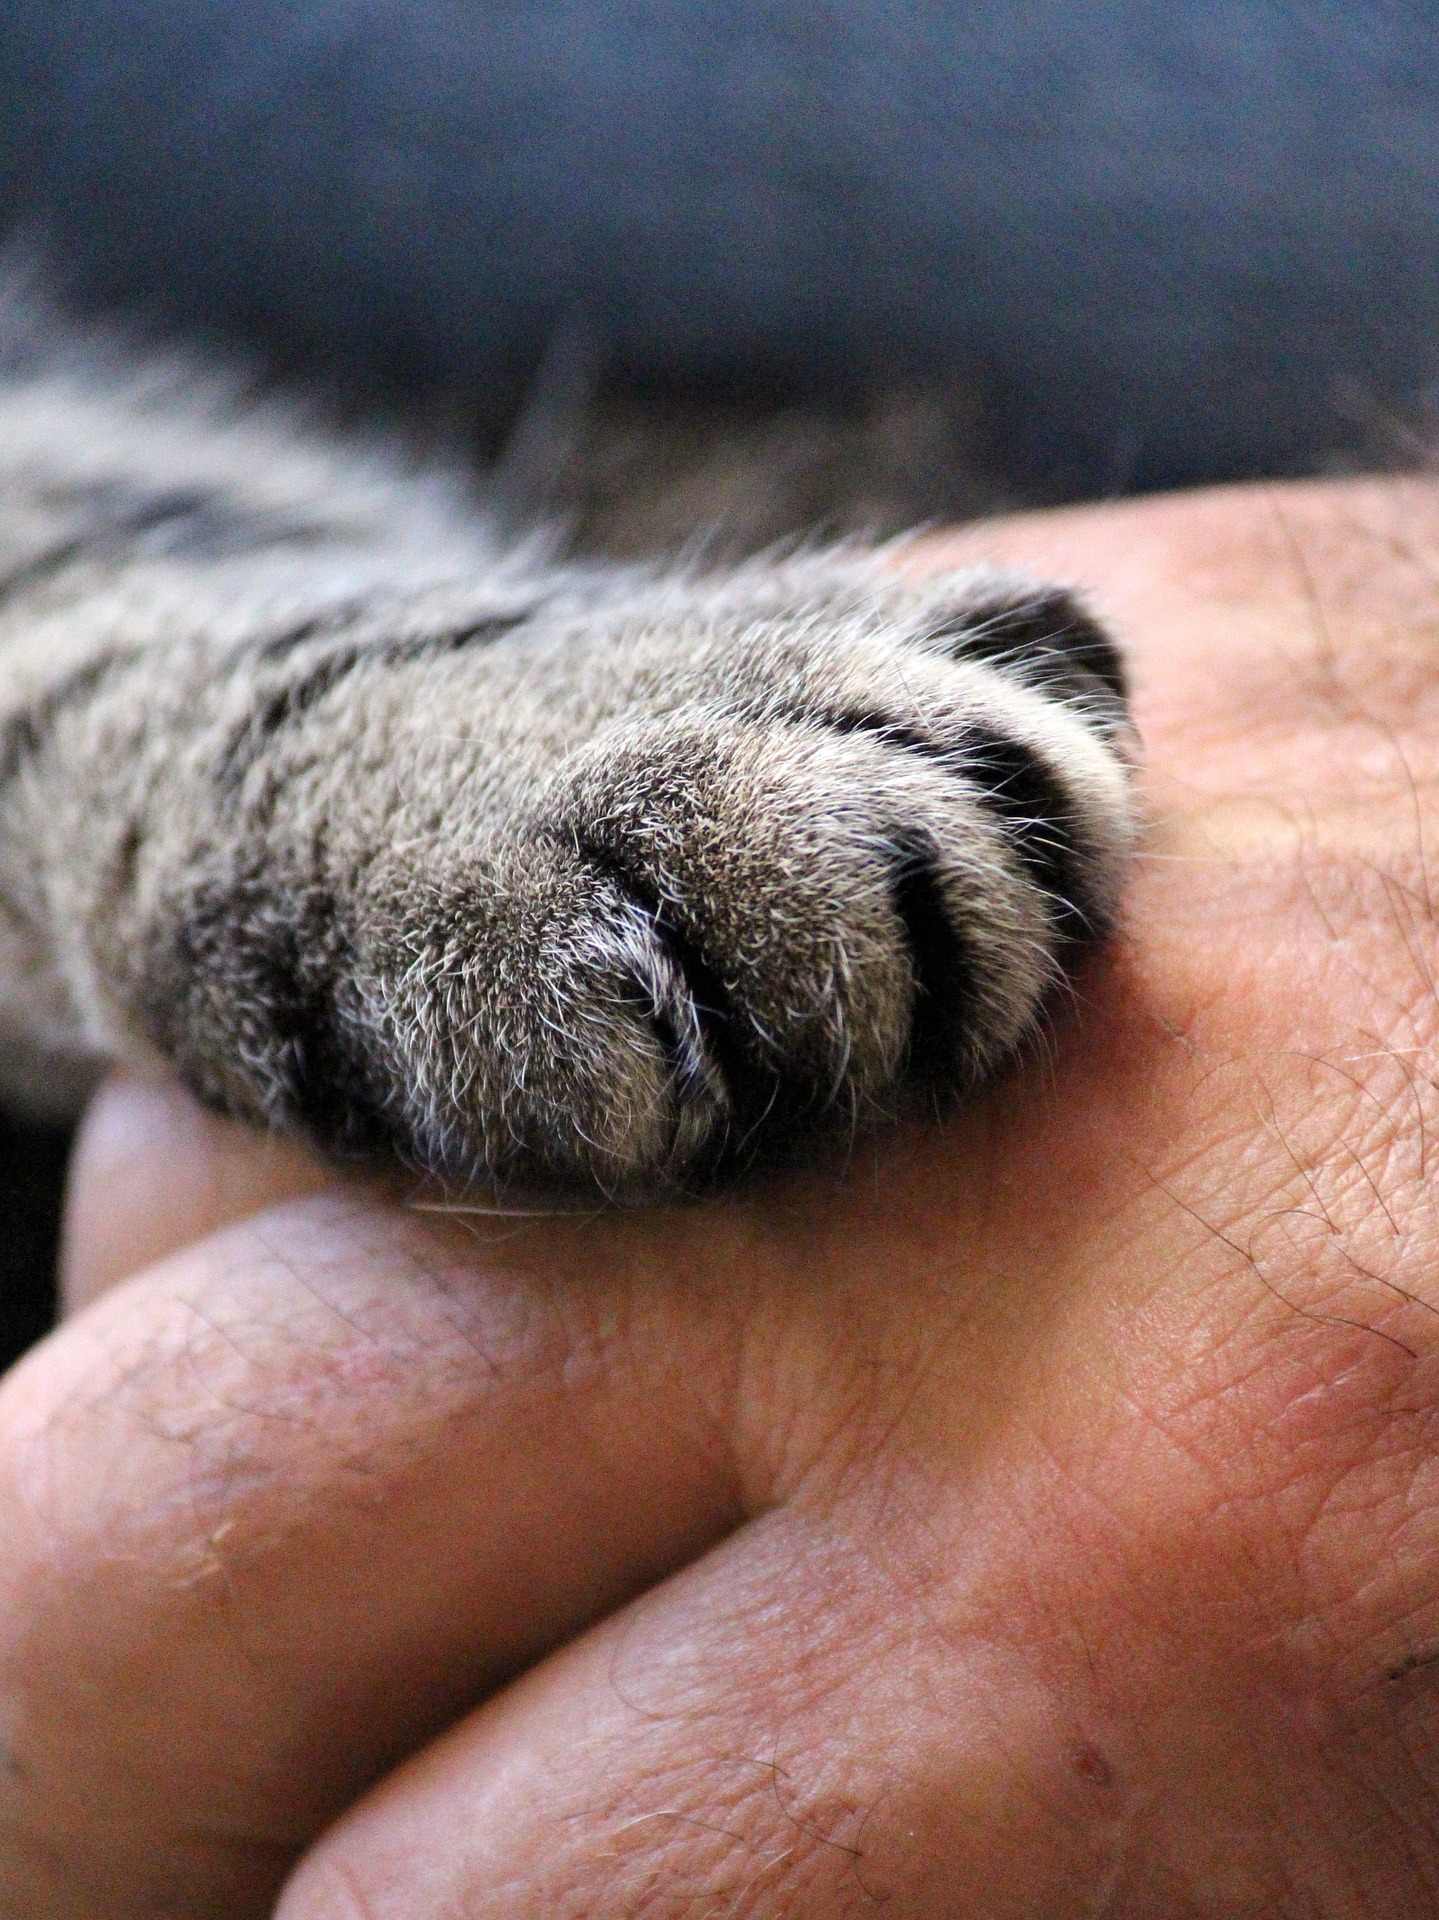 Cat paw on hand